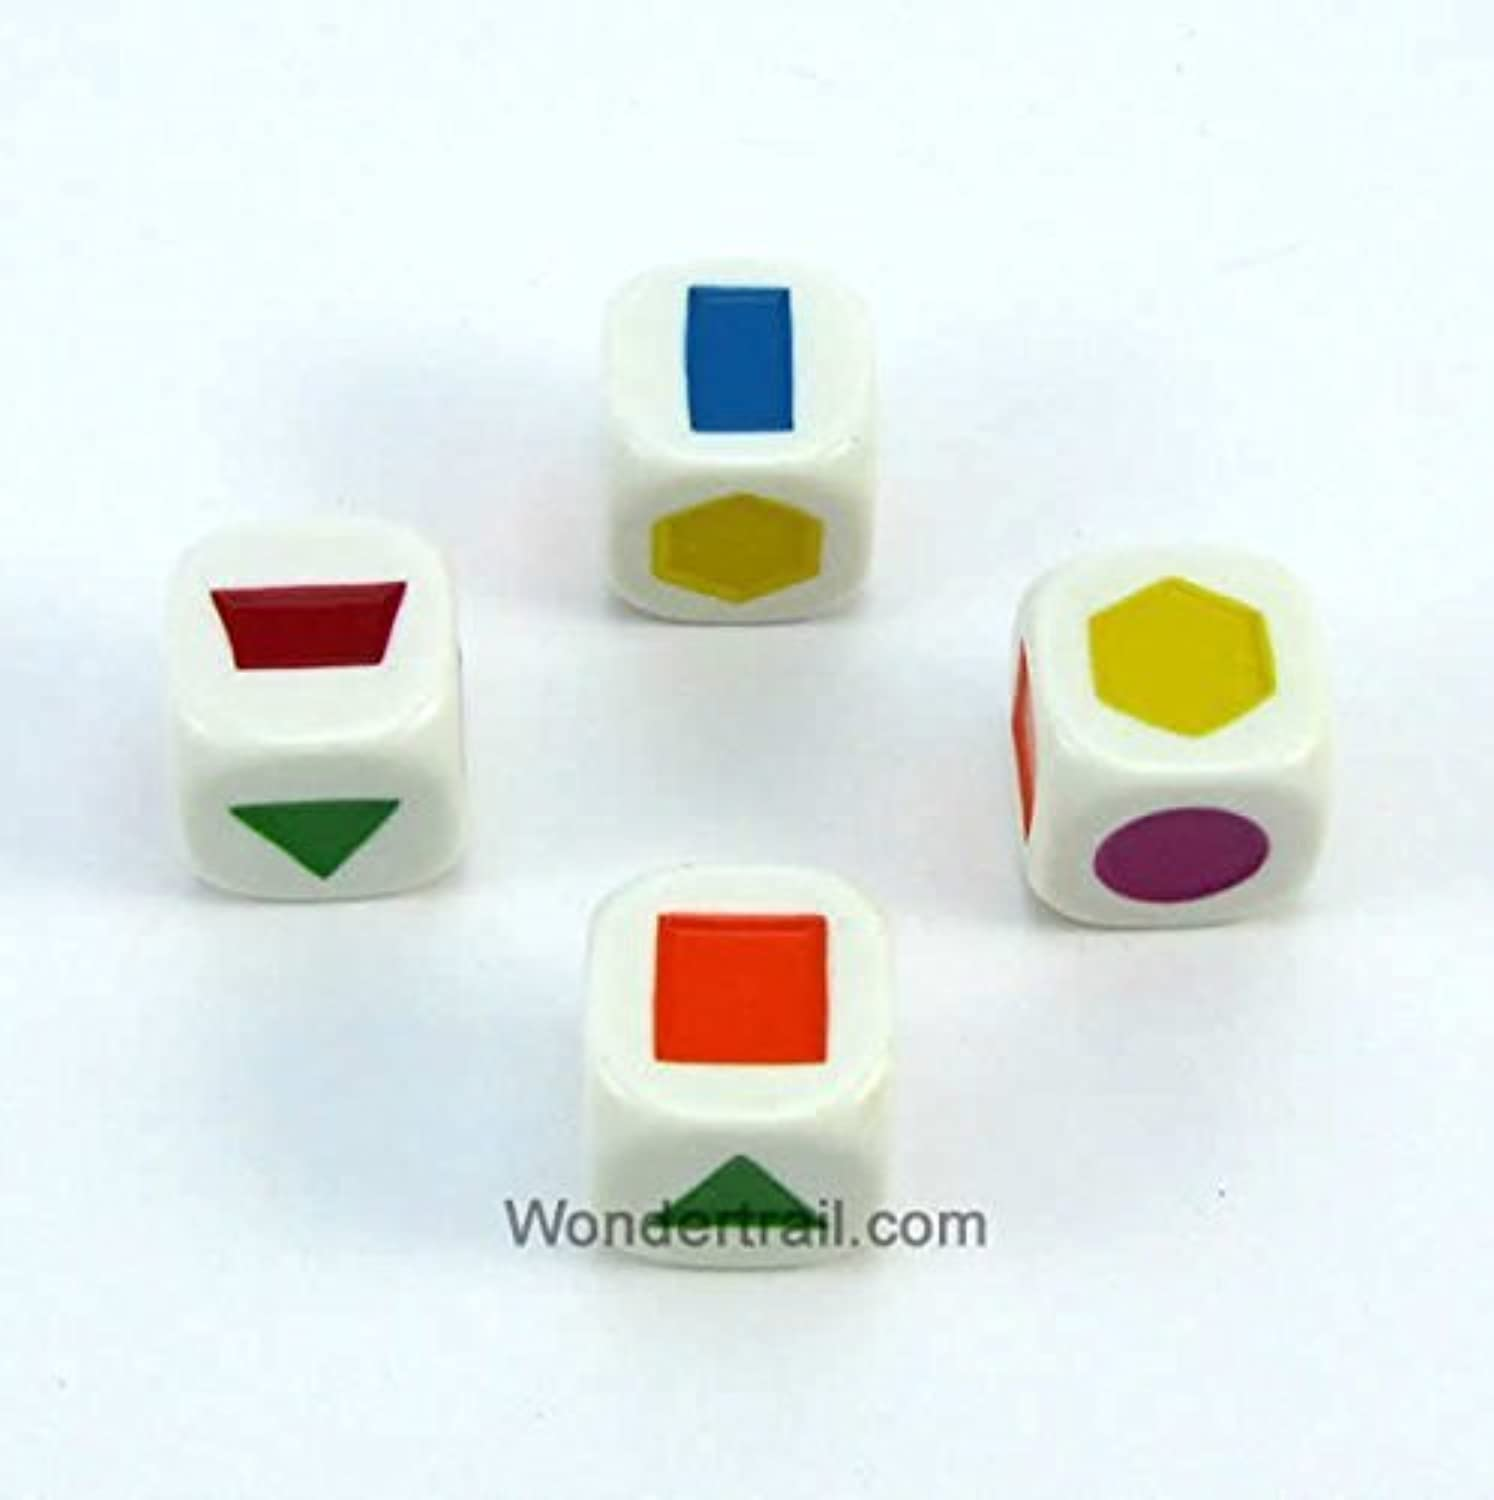 WKP13849E4 Shapes Dice D6 White Opaque with Different Color Shapes 20mm (25/32in) Set of 4 Dice Koplow Game